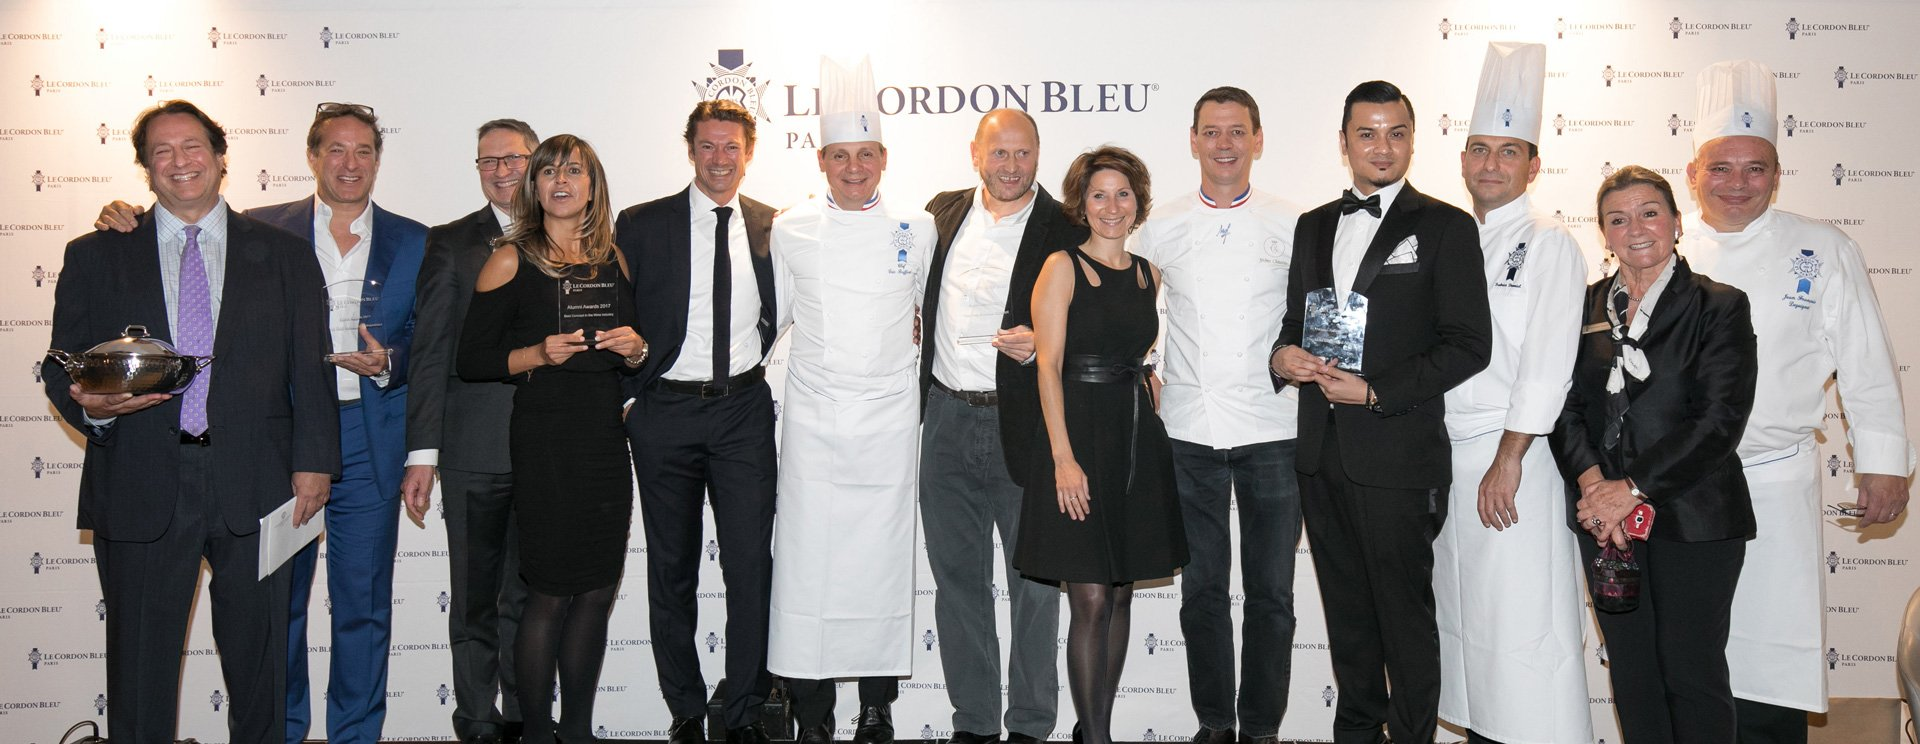 Alumni Gala: Le Cordon Bleu Paris honours its alumni and celebrates their success during the 2017 Alumni Awards